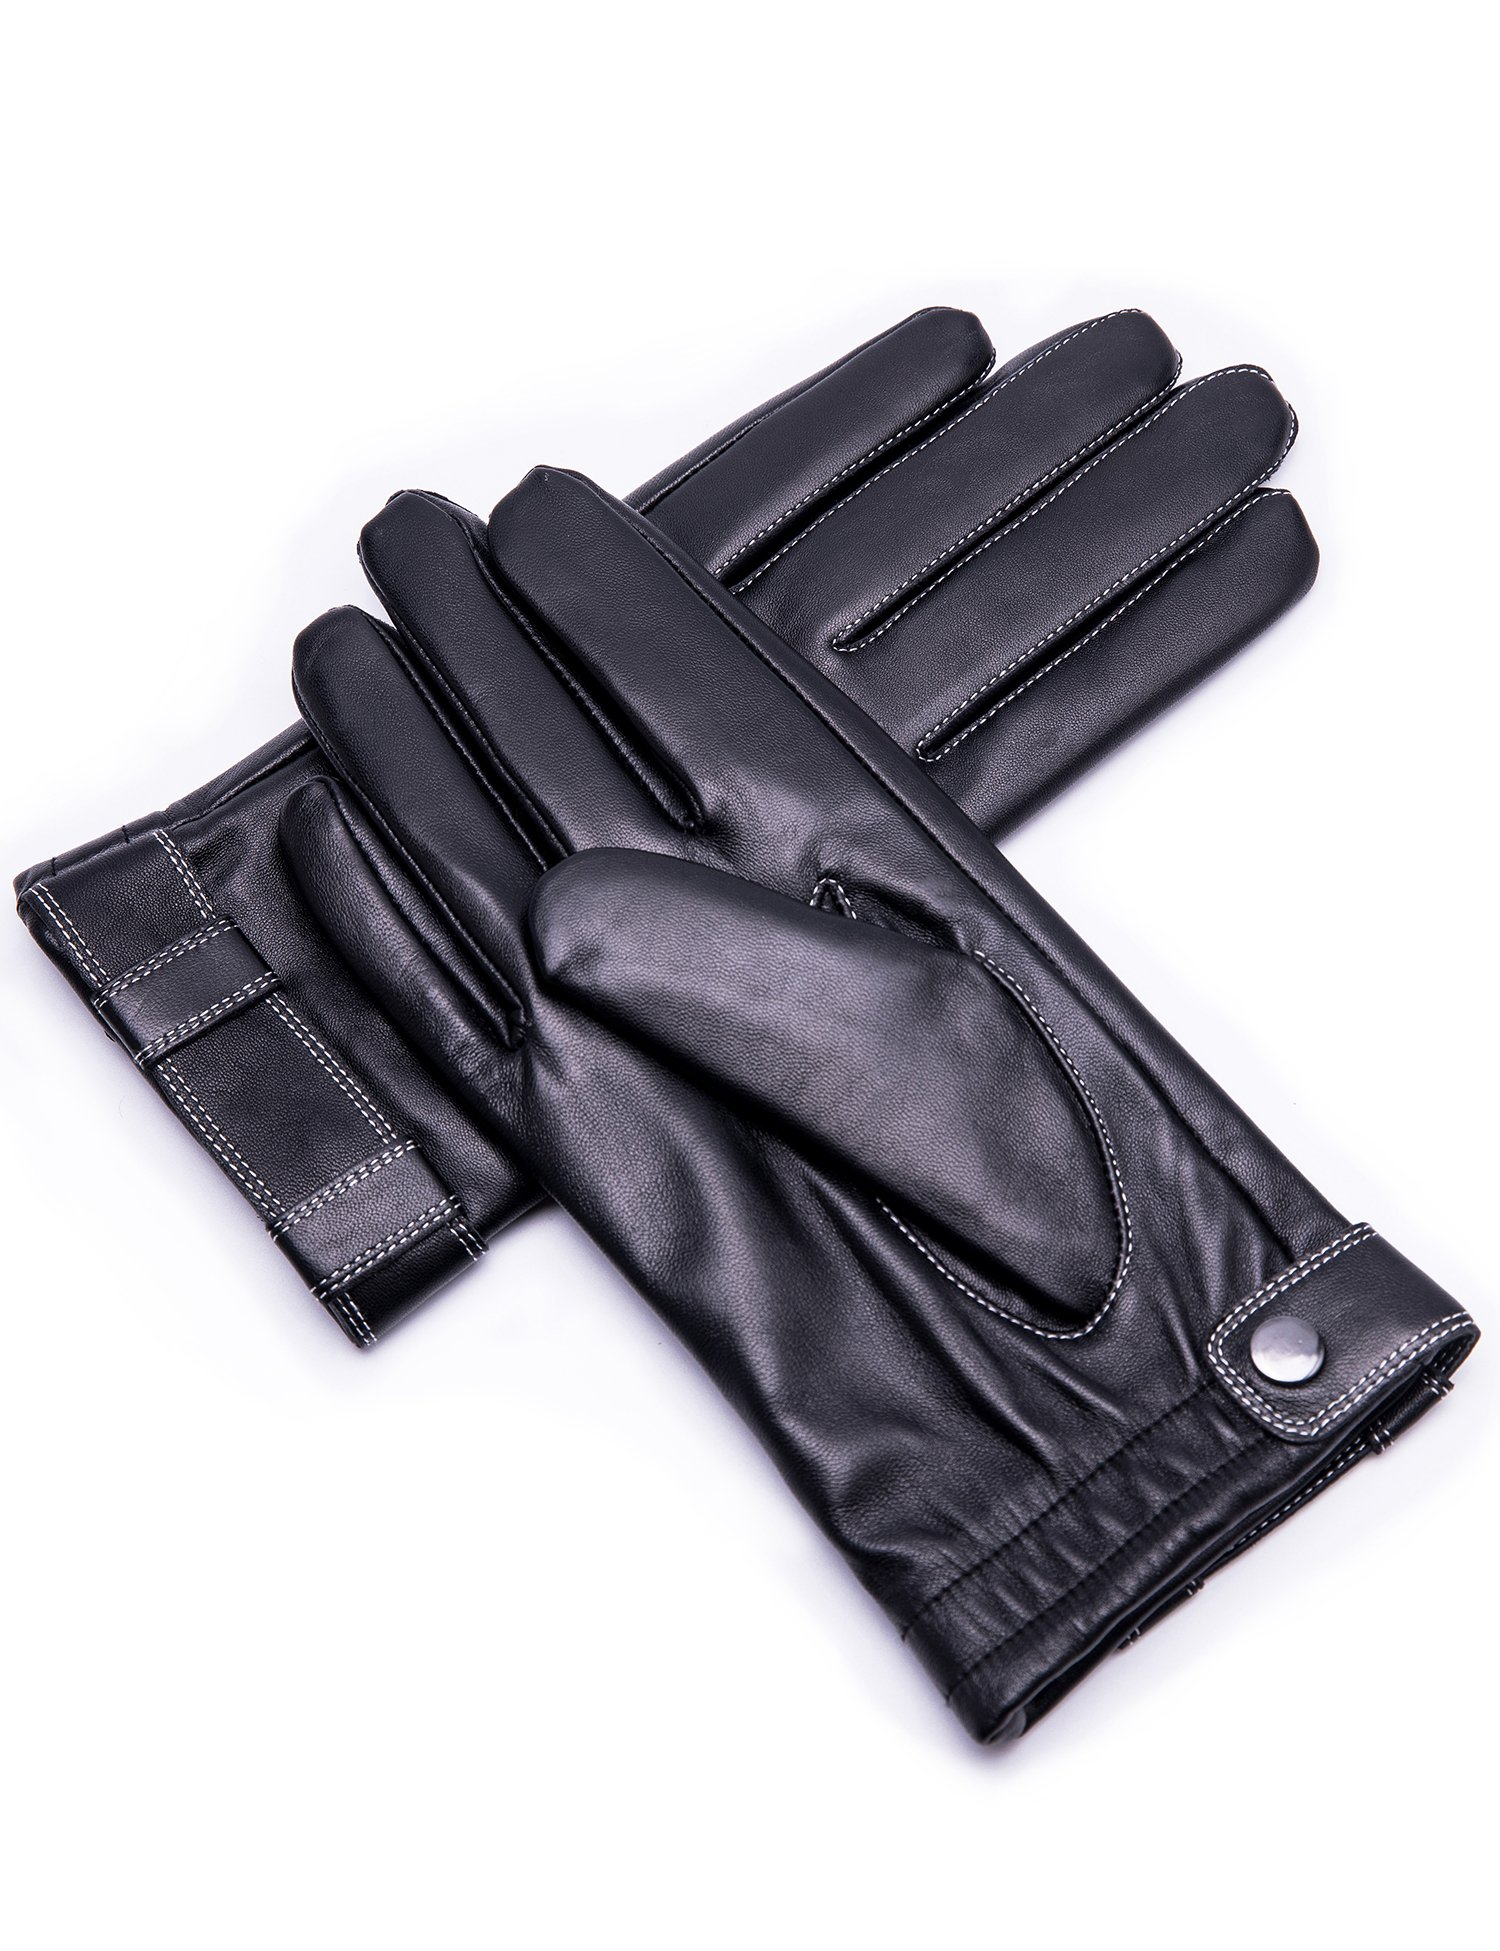 Men's Genuine Goatskin Leather Winter Warm Lined Gloves with Touchscreen Technology,Black,11''